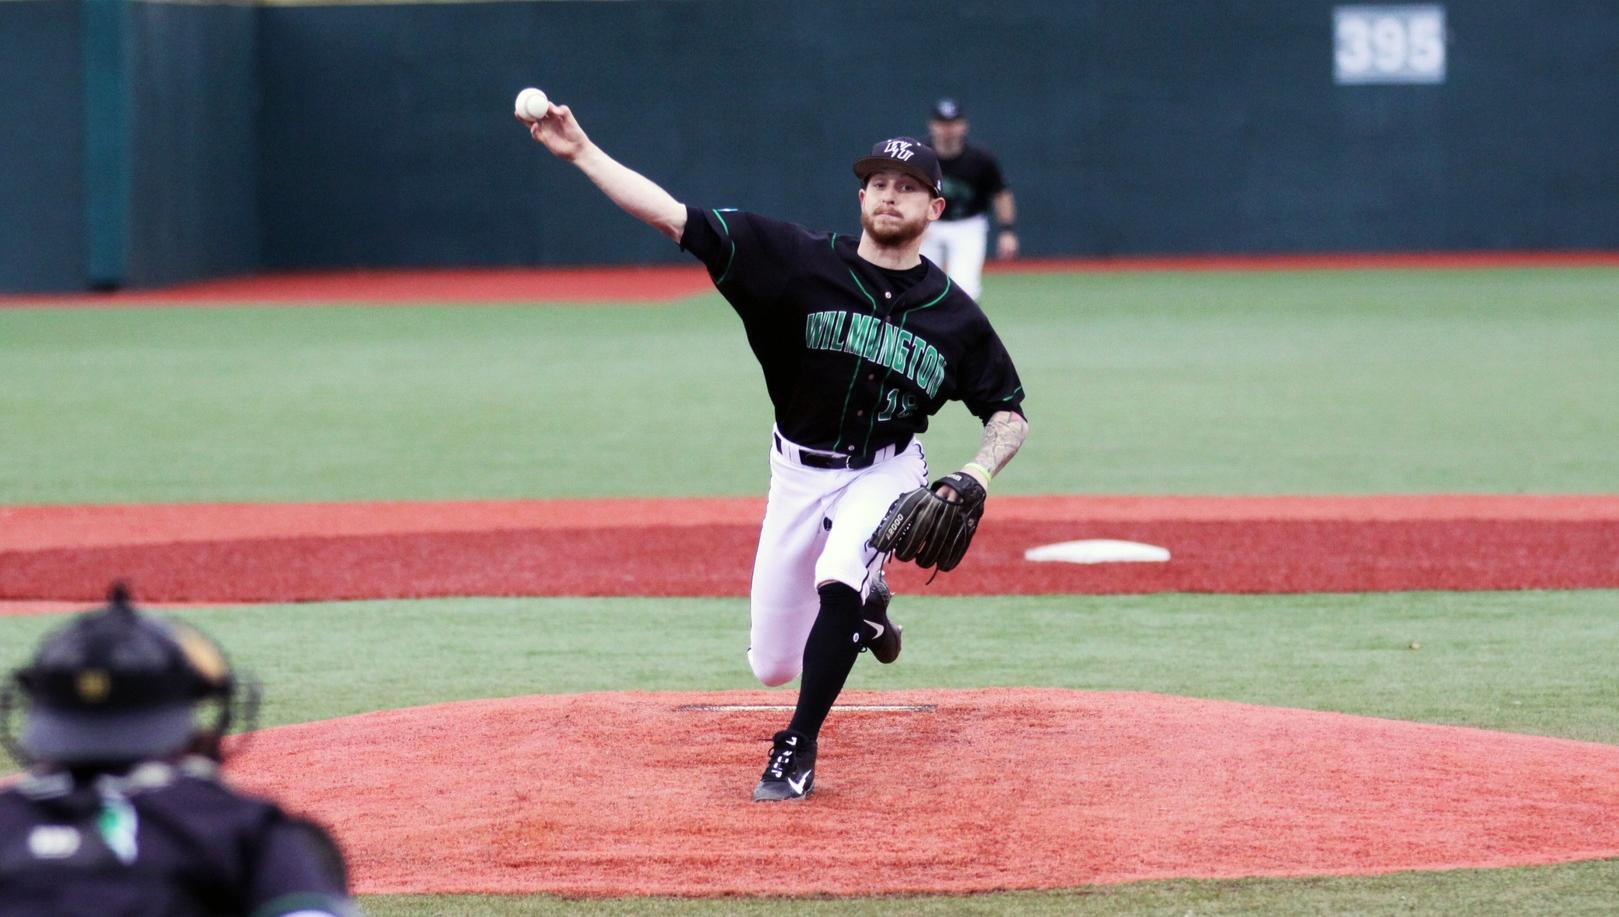 Copyright 2019; Wilmington University. All rights reserved. File photo of WilmU starter Noah Latshaw. Photo by Dan Lauletta. February 22, 2019 vs. New Haven at Myrtle Beach, S.C.